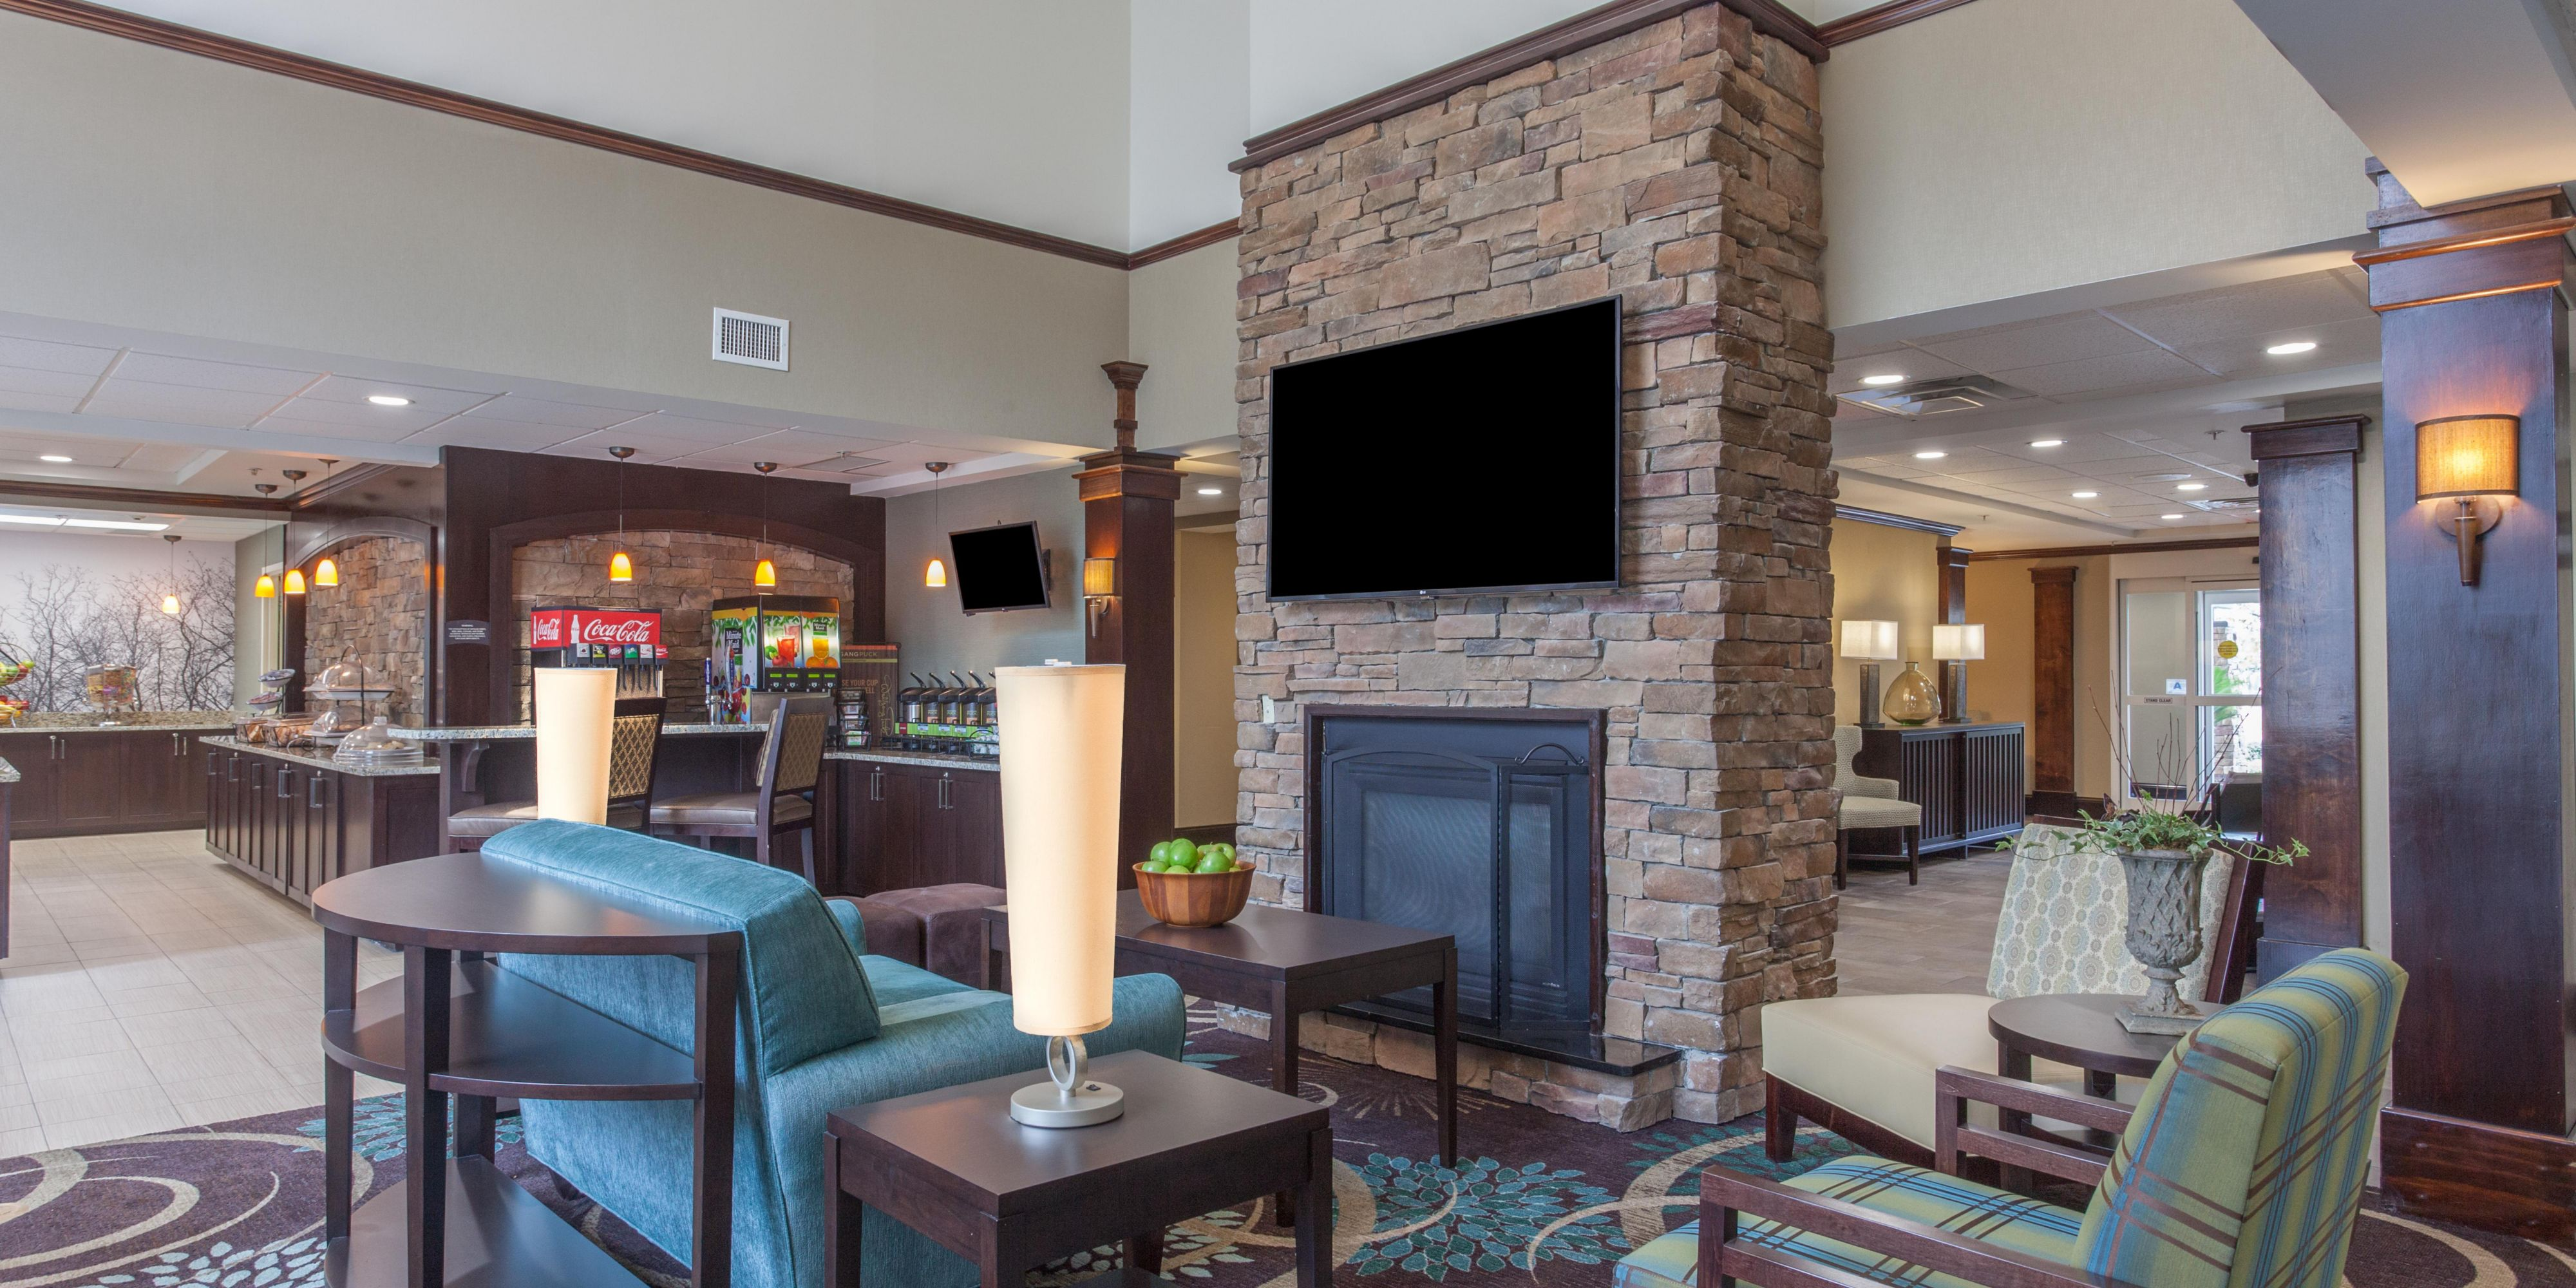 Greenville Hotels: Staybridge Suites Greenville I 85 Woodruff Road    Extended Stay Hotel In Greenville, South Carolina